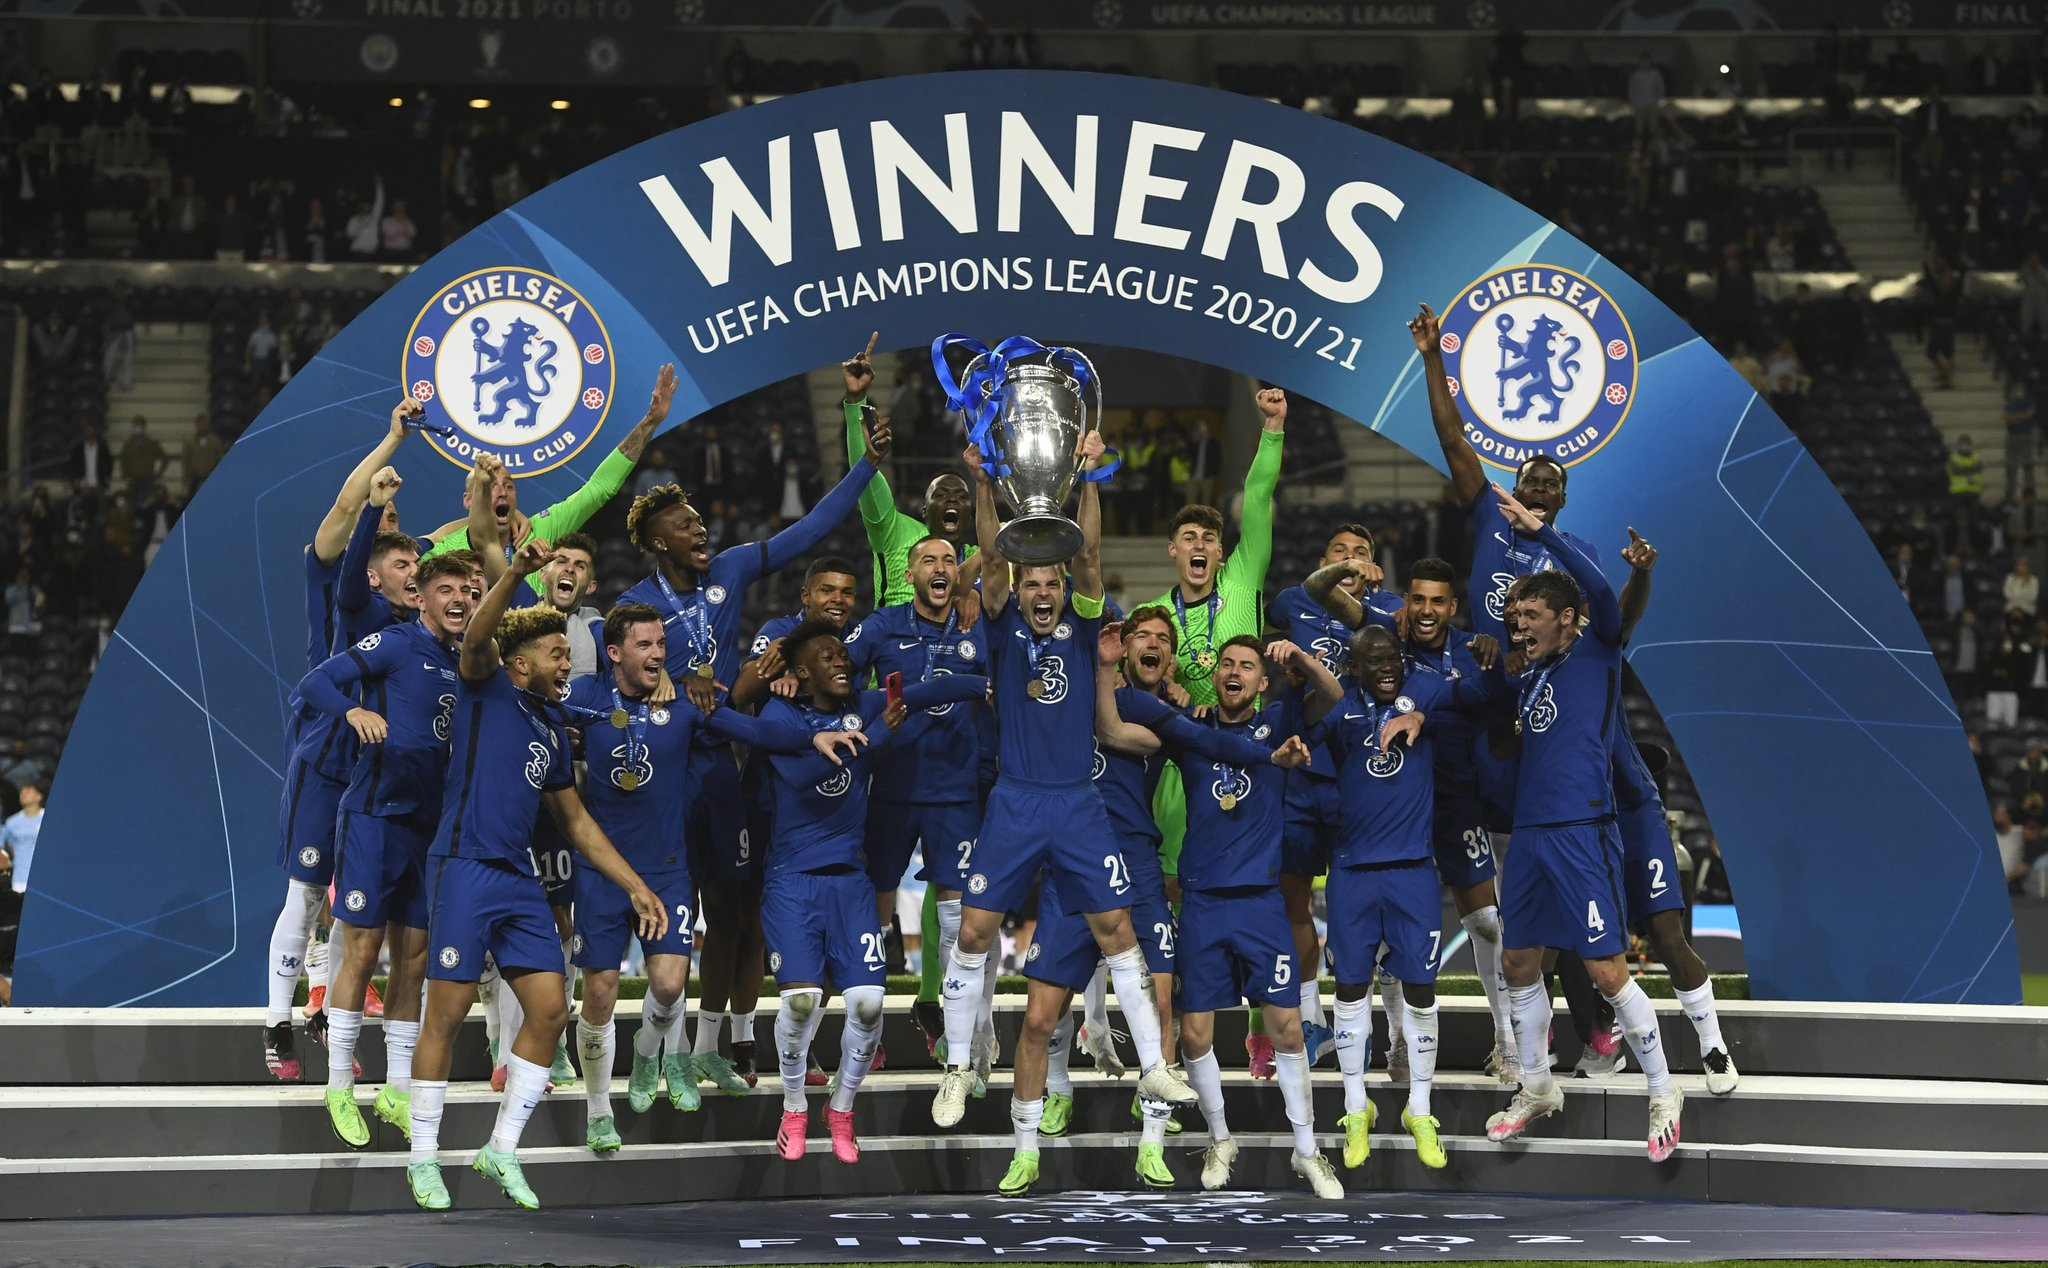 BREAKING: Chelsea defeat Man City to win 2020/2021 Champions League